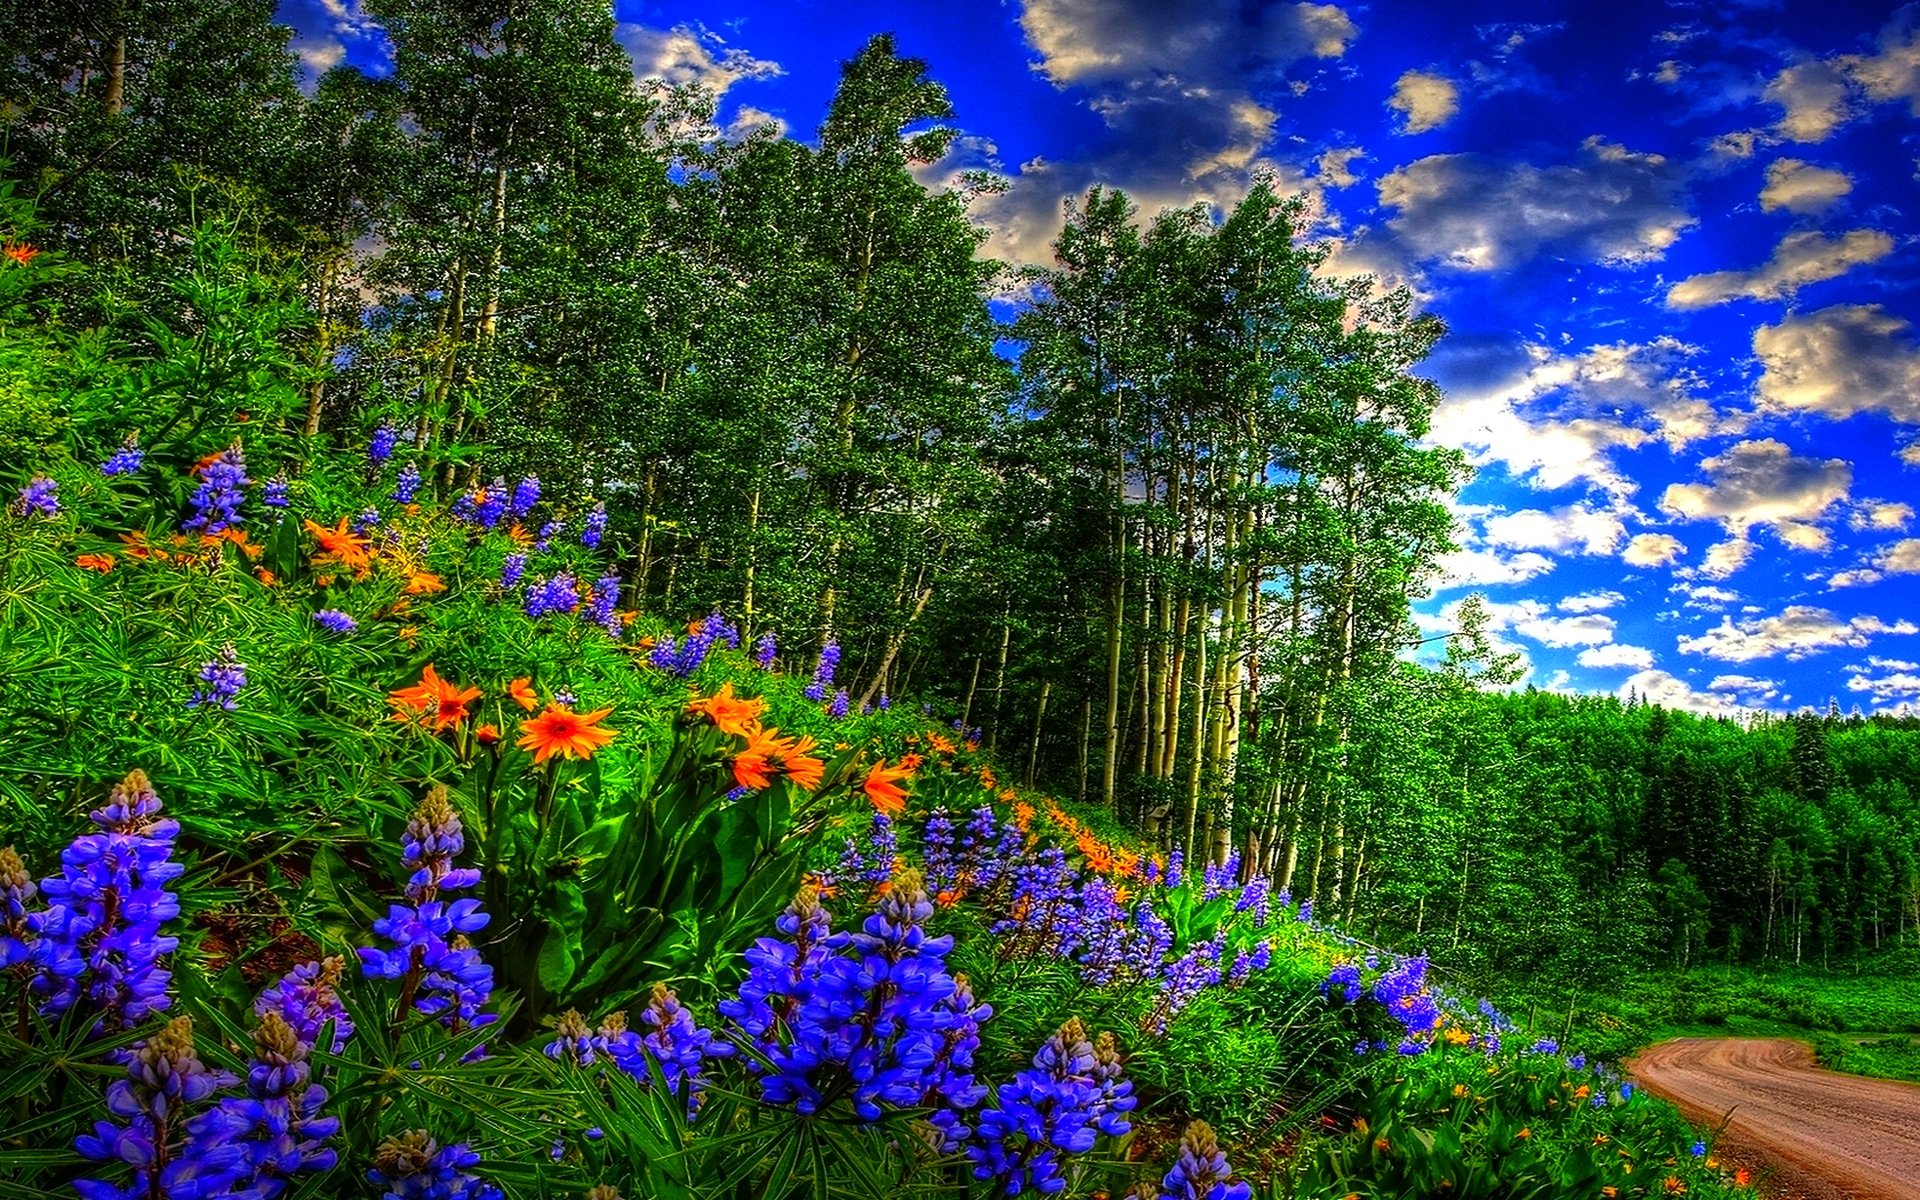 Fall Hd Wallpaper 1280x1024 Spring Forest Sky Clouds Flowers Forest Road Wallpaper